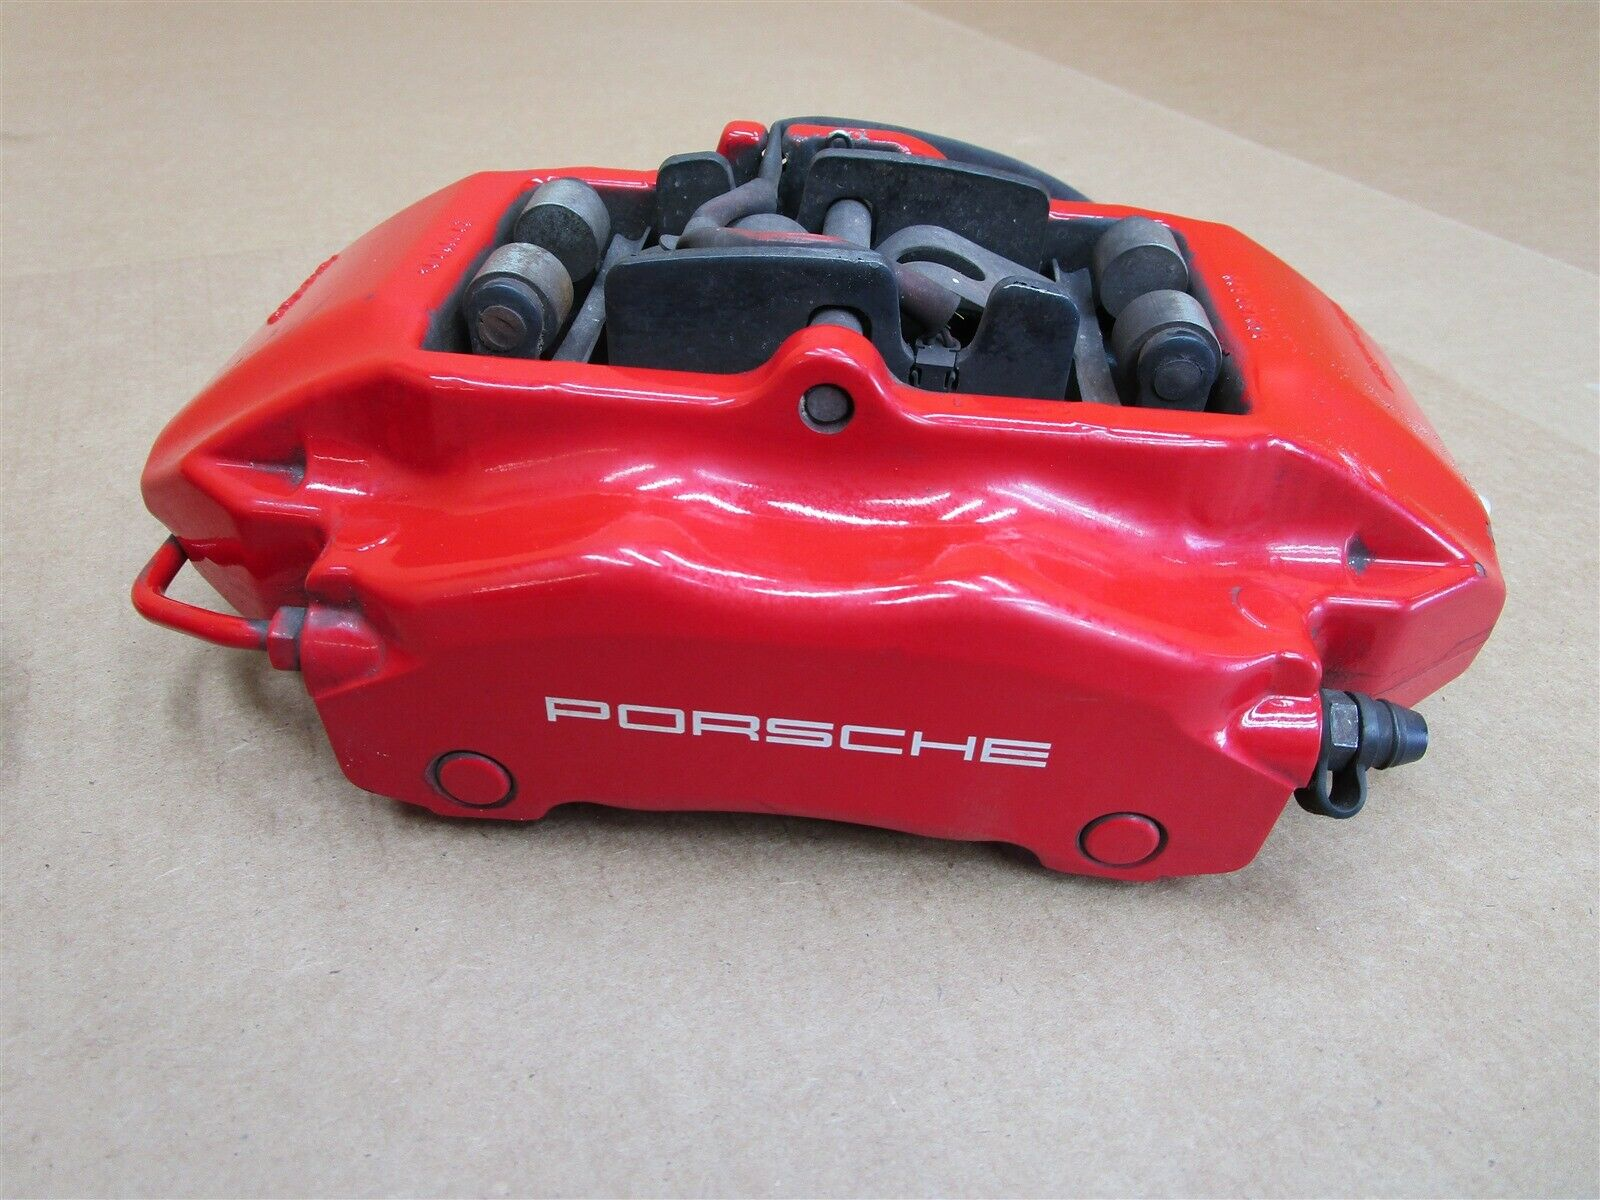 06 Cayman S Porsche 987 FRONT BREMBO BRAKE CALIPERS 996351425 996351426 79,161